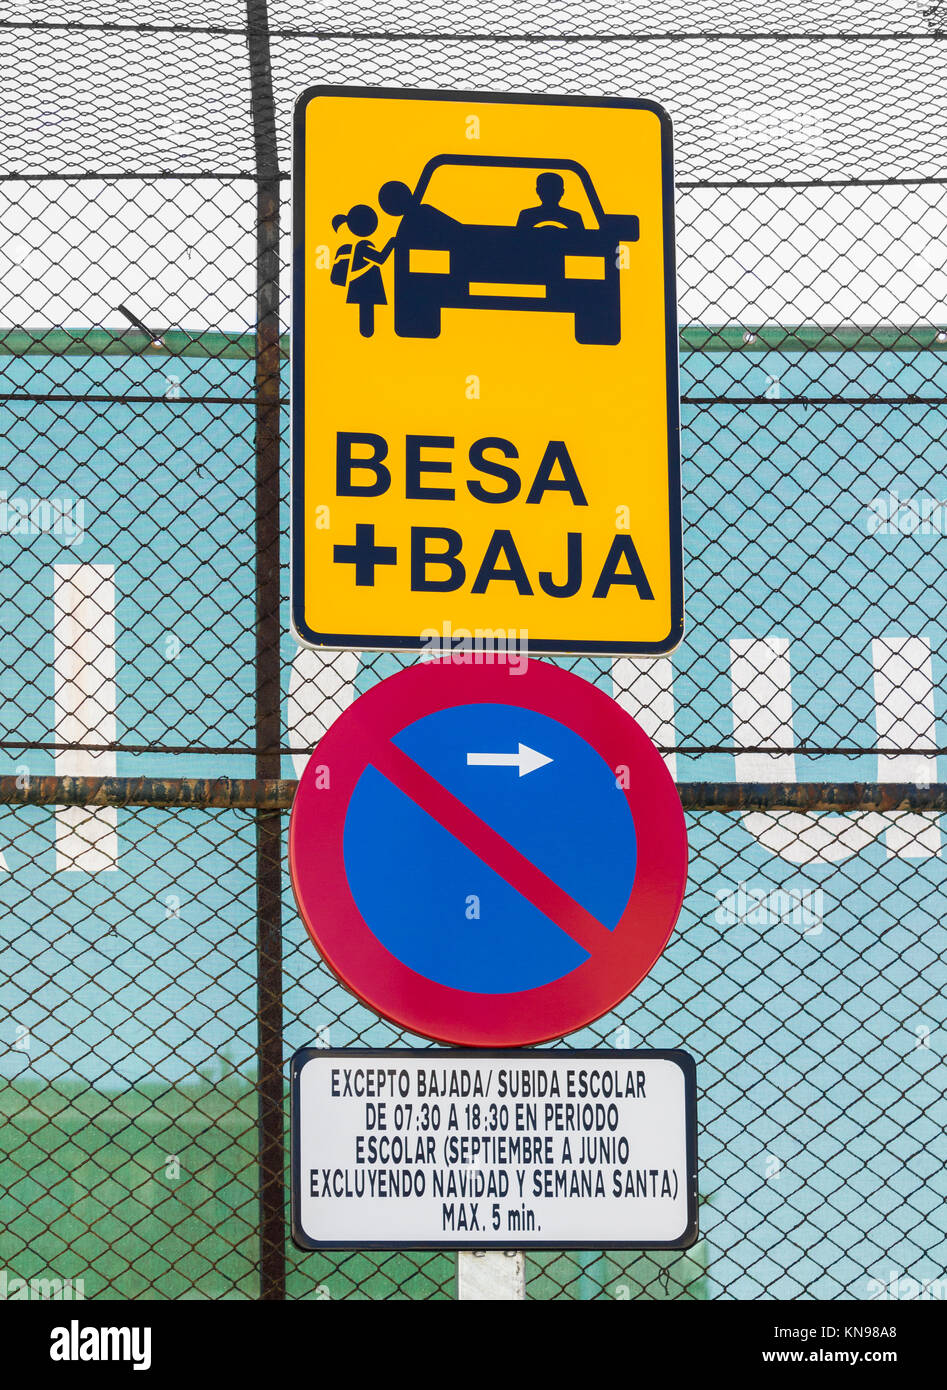 Besa + Baja (kiss and drop off) zone for parents dropping off children outside school in Spain. Stock Photo